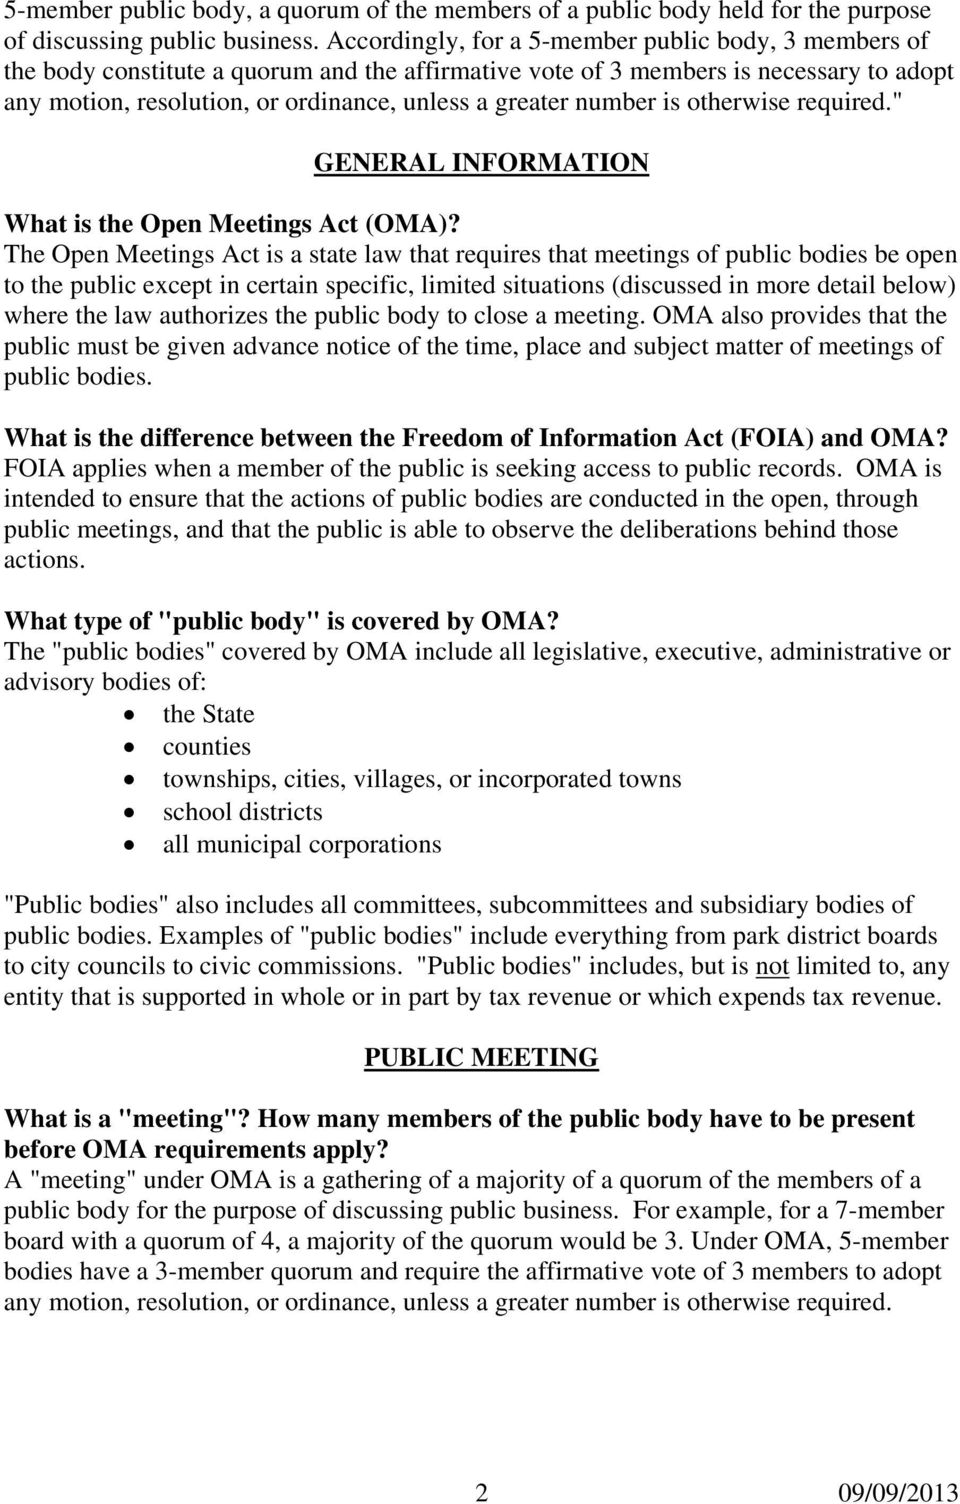 "number is otherwise required."" GENERAL INFORMATION What is the Open Meetings Act (OMA)?"